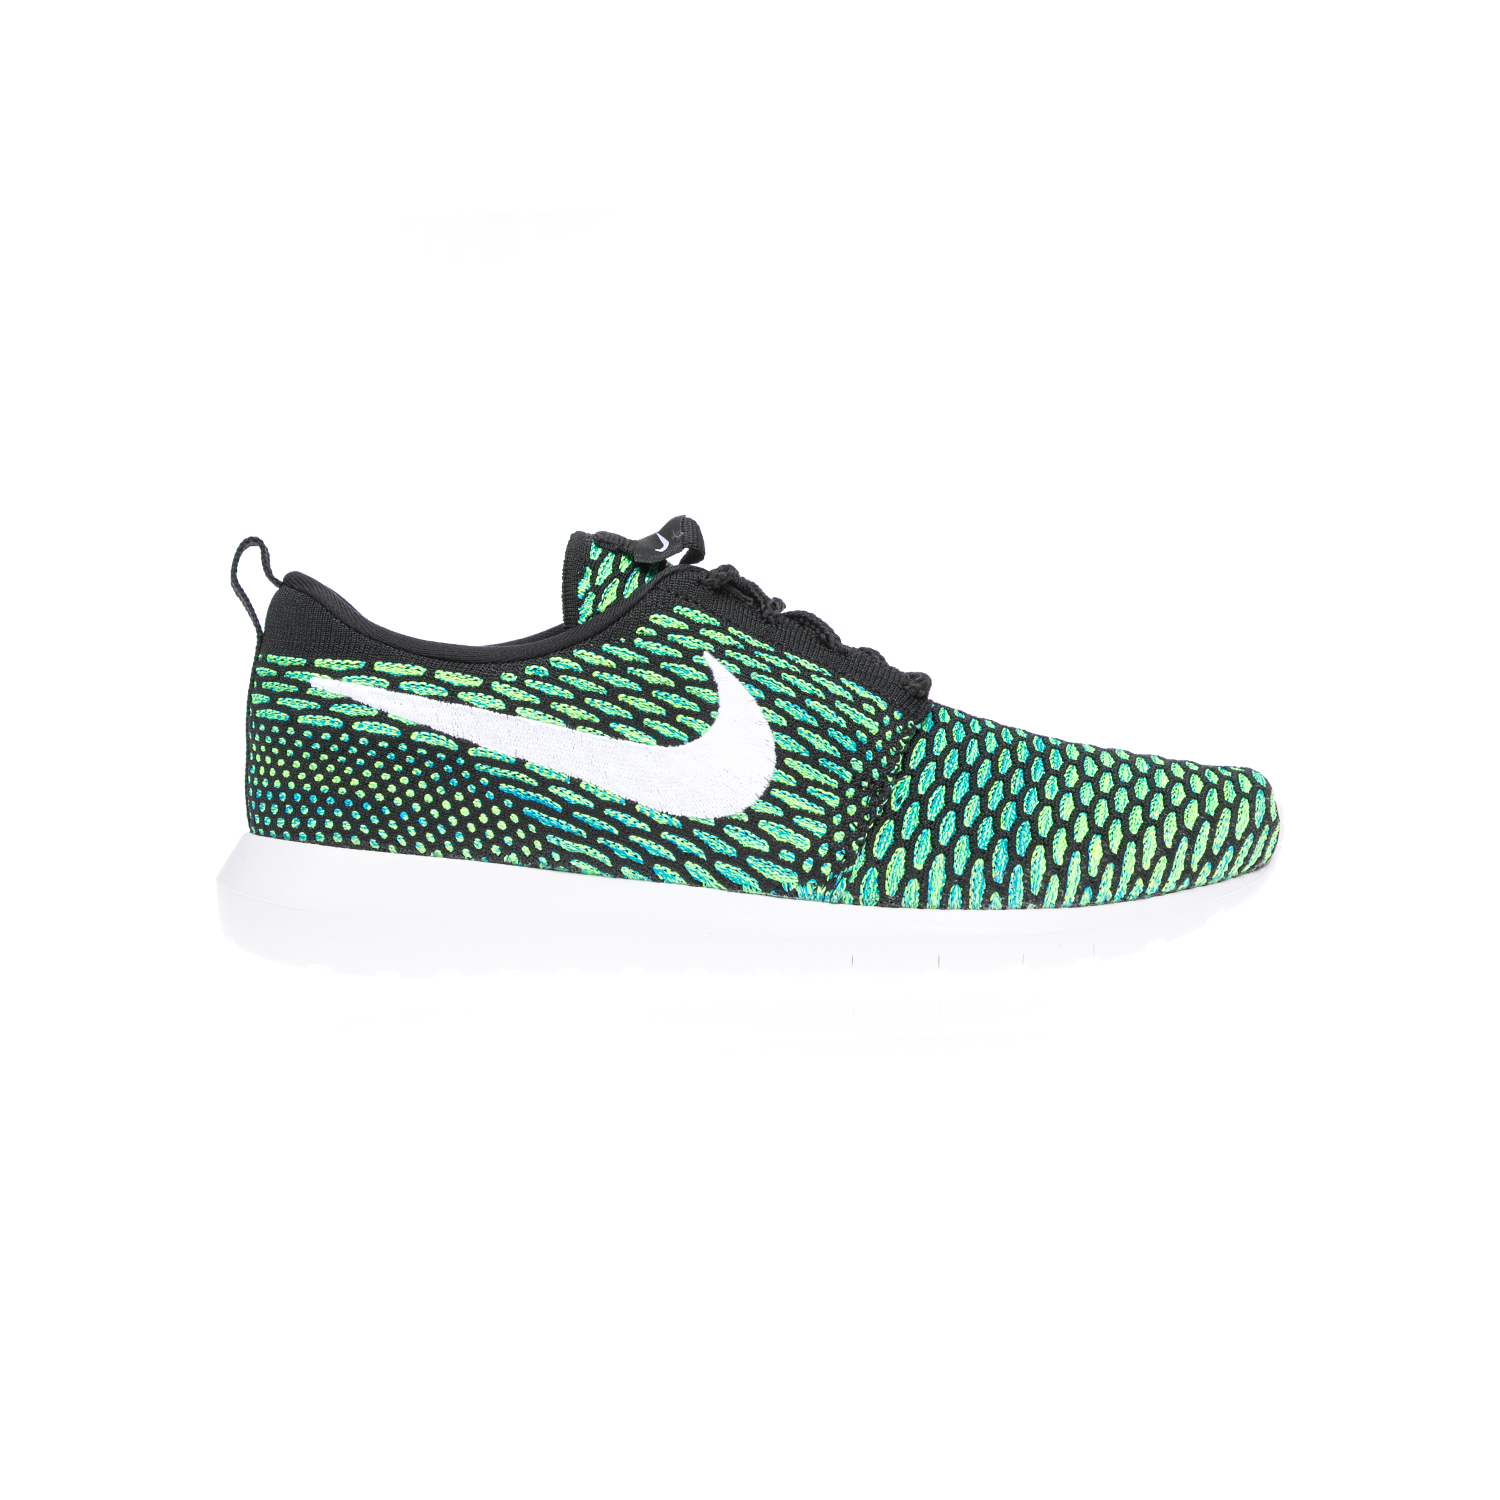 NIKE – Αντρικά παπούτσια NIKE ROSHE NM FLYKNIT πράσινα-μαύρα